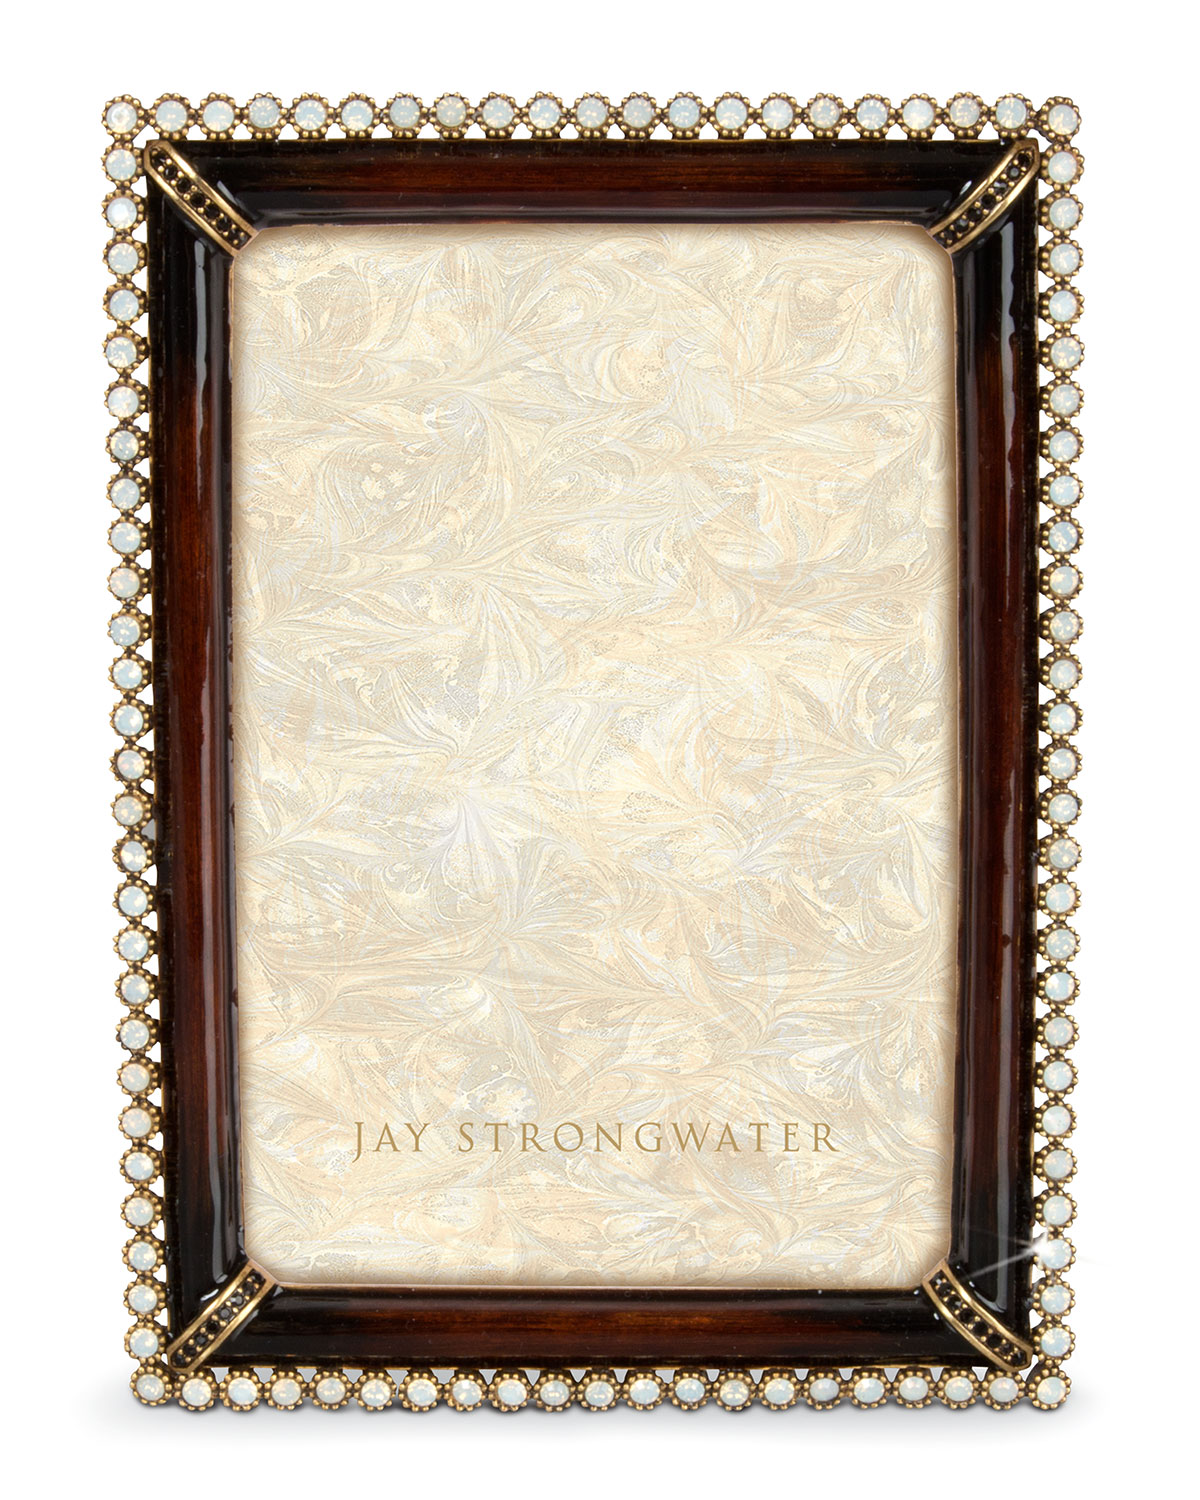 jay strongwater stone edge 4 x 6 picture frame neiman marcus. Black Bedroom Furniture Sets. Home Design Ideas